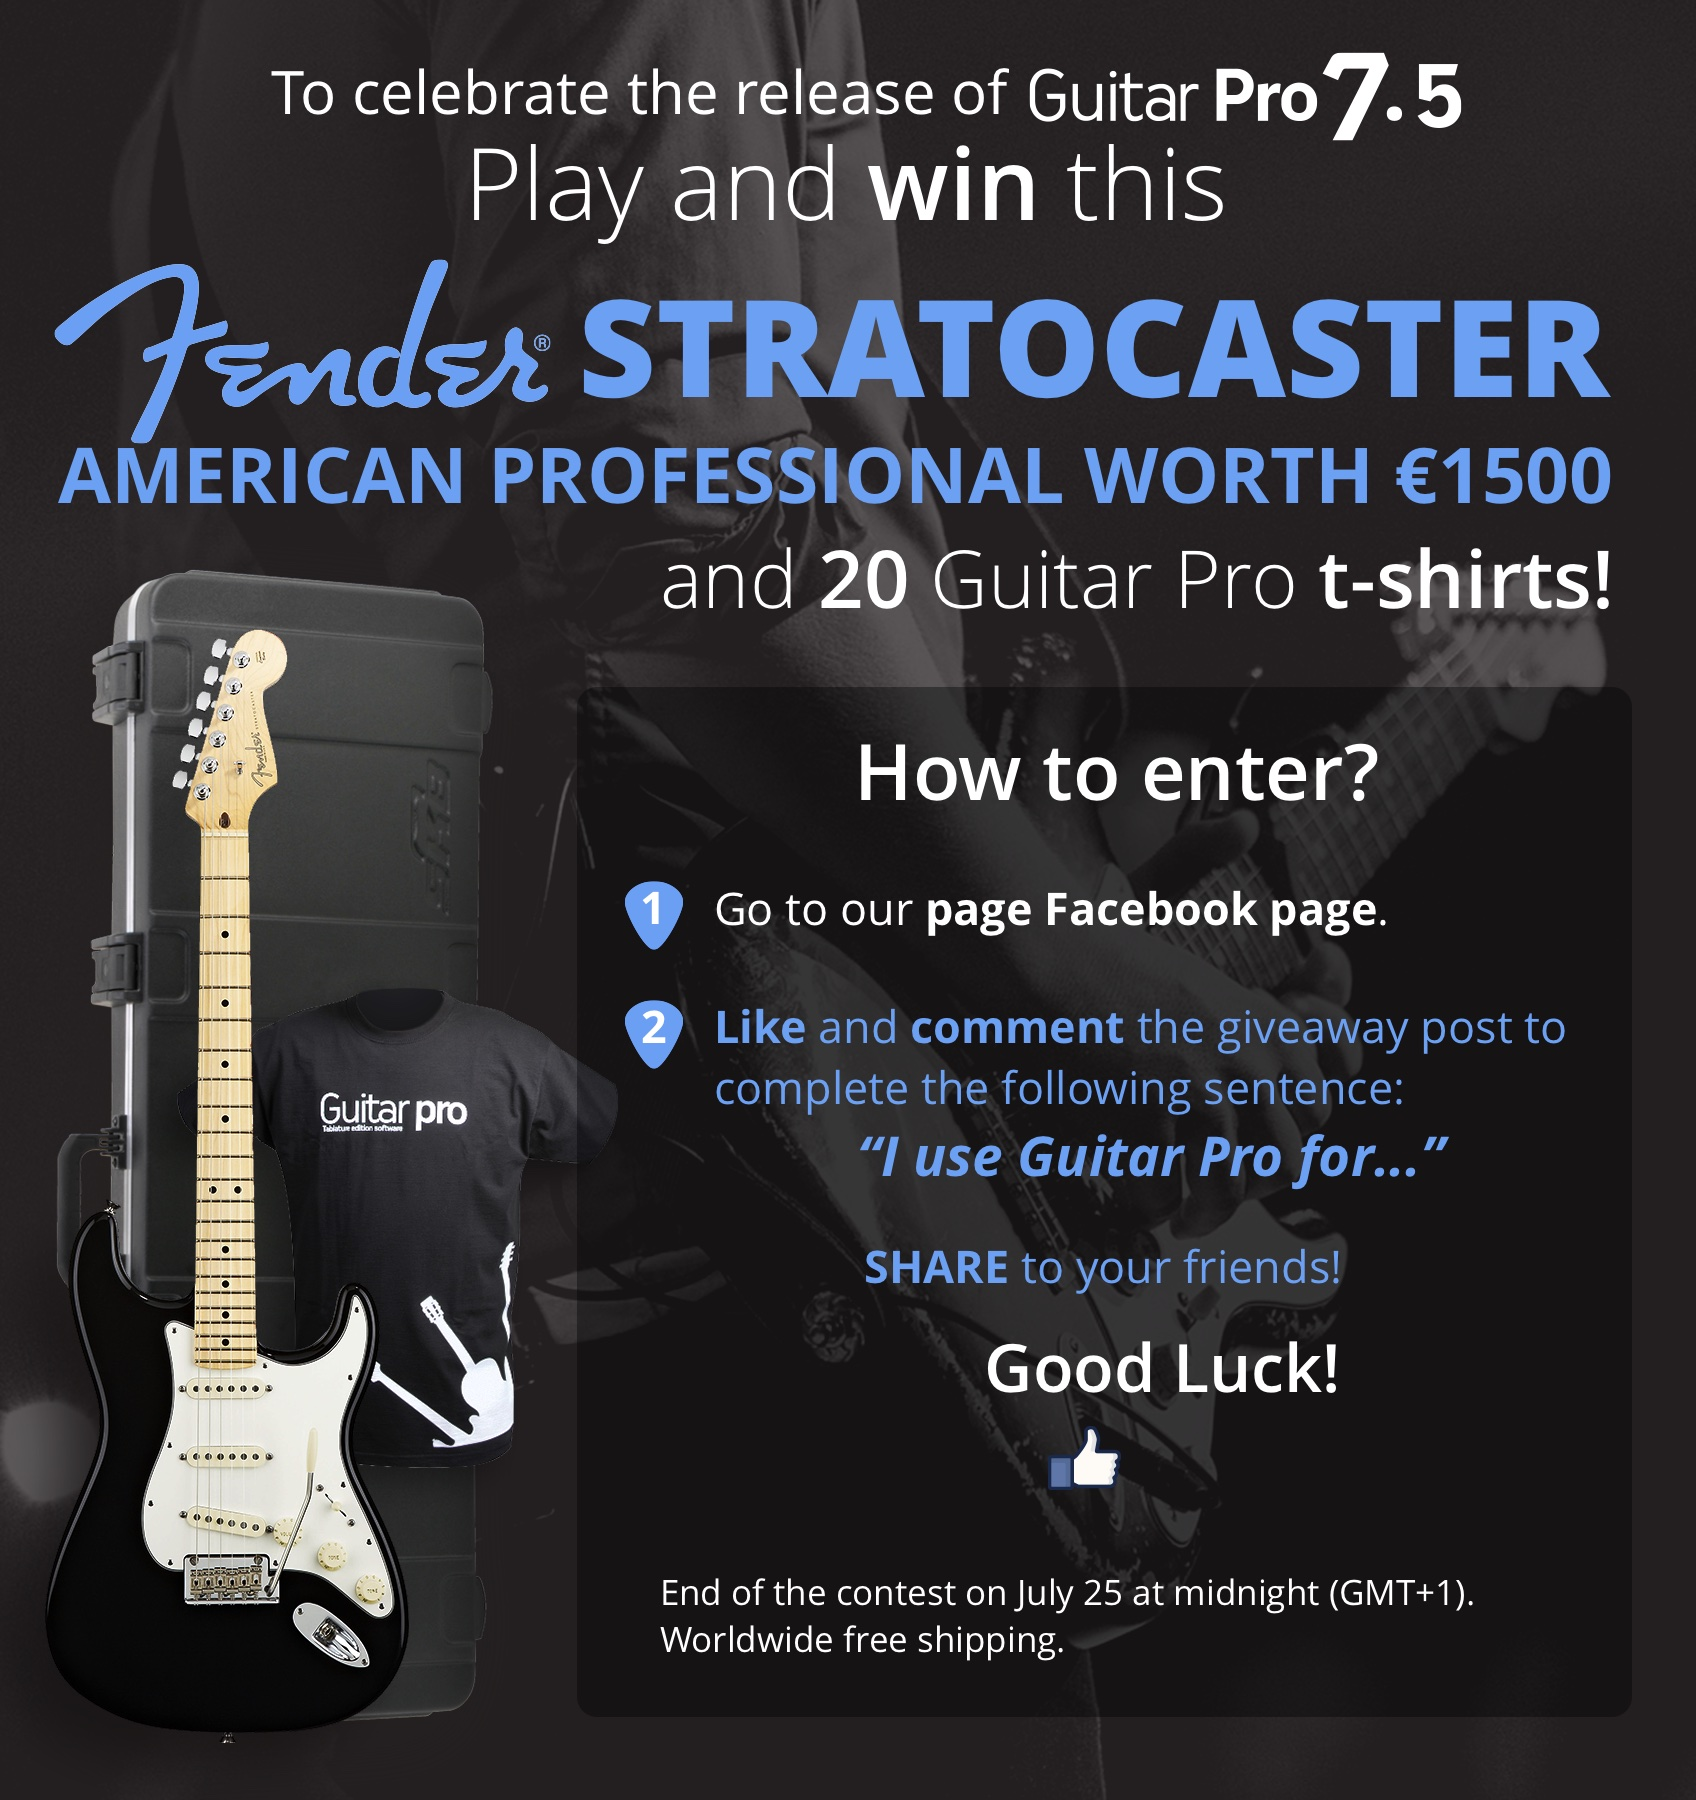 CLOSED] [GUITAR PRO 7 5 GIVEAWAY] WIN this amazing Fender